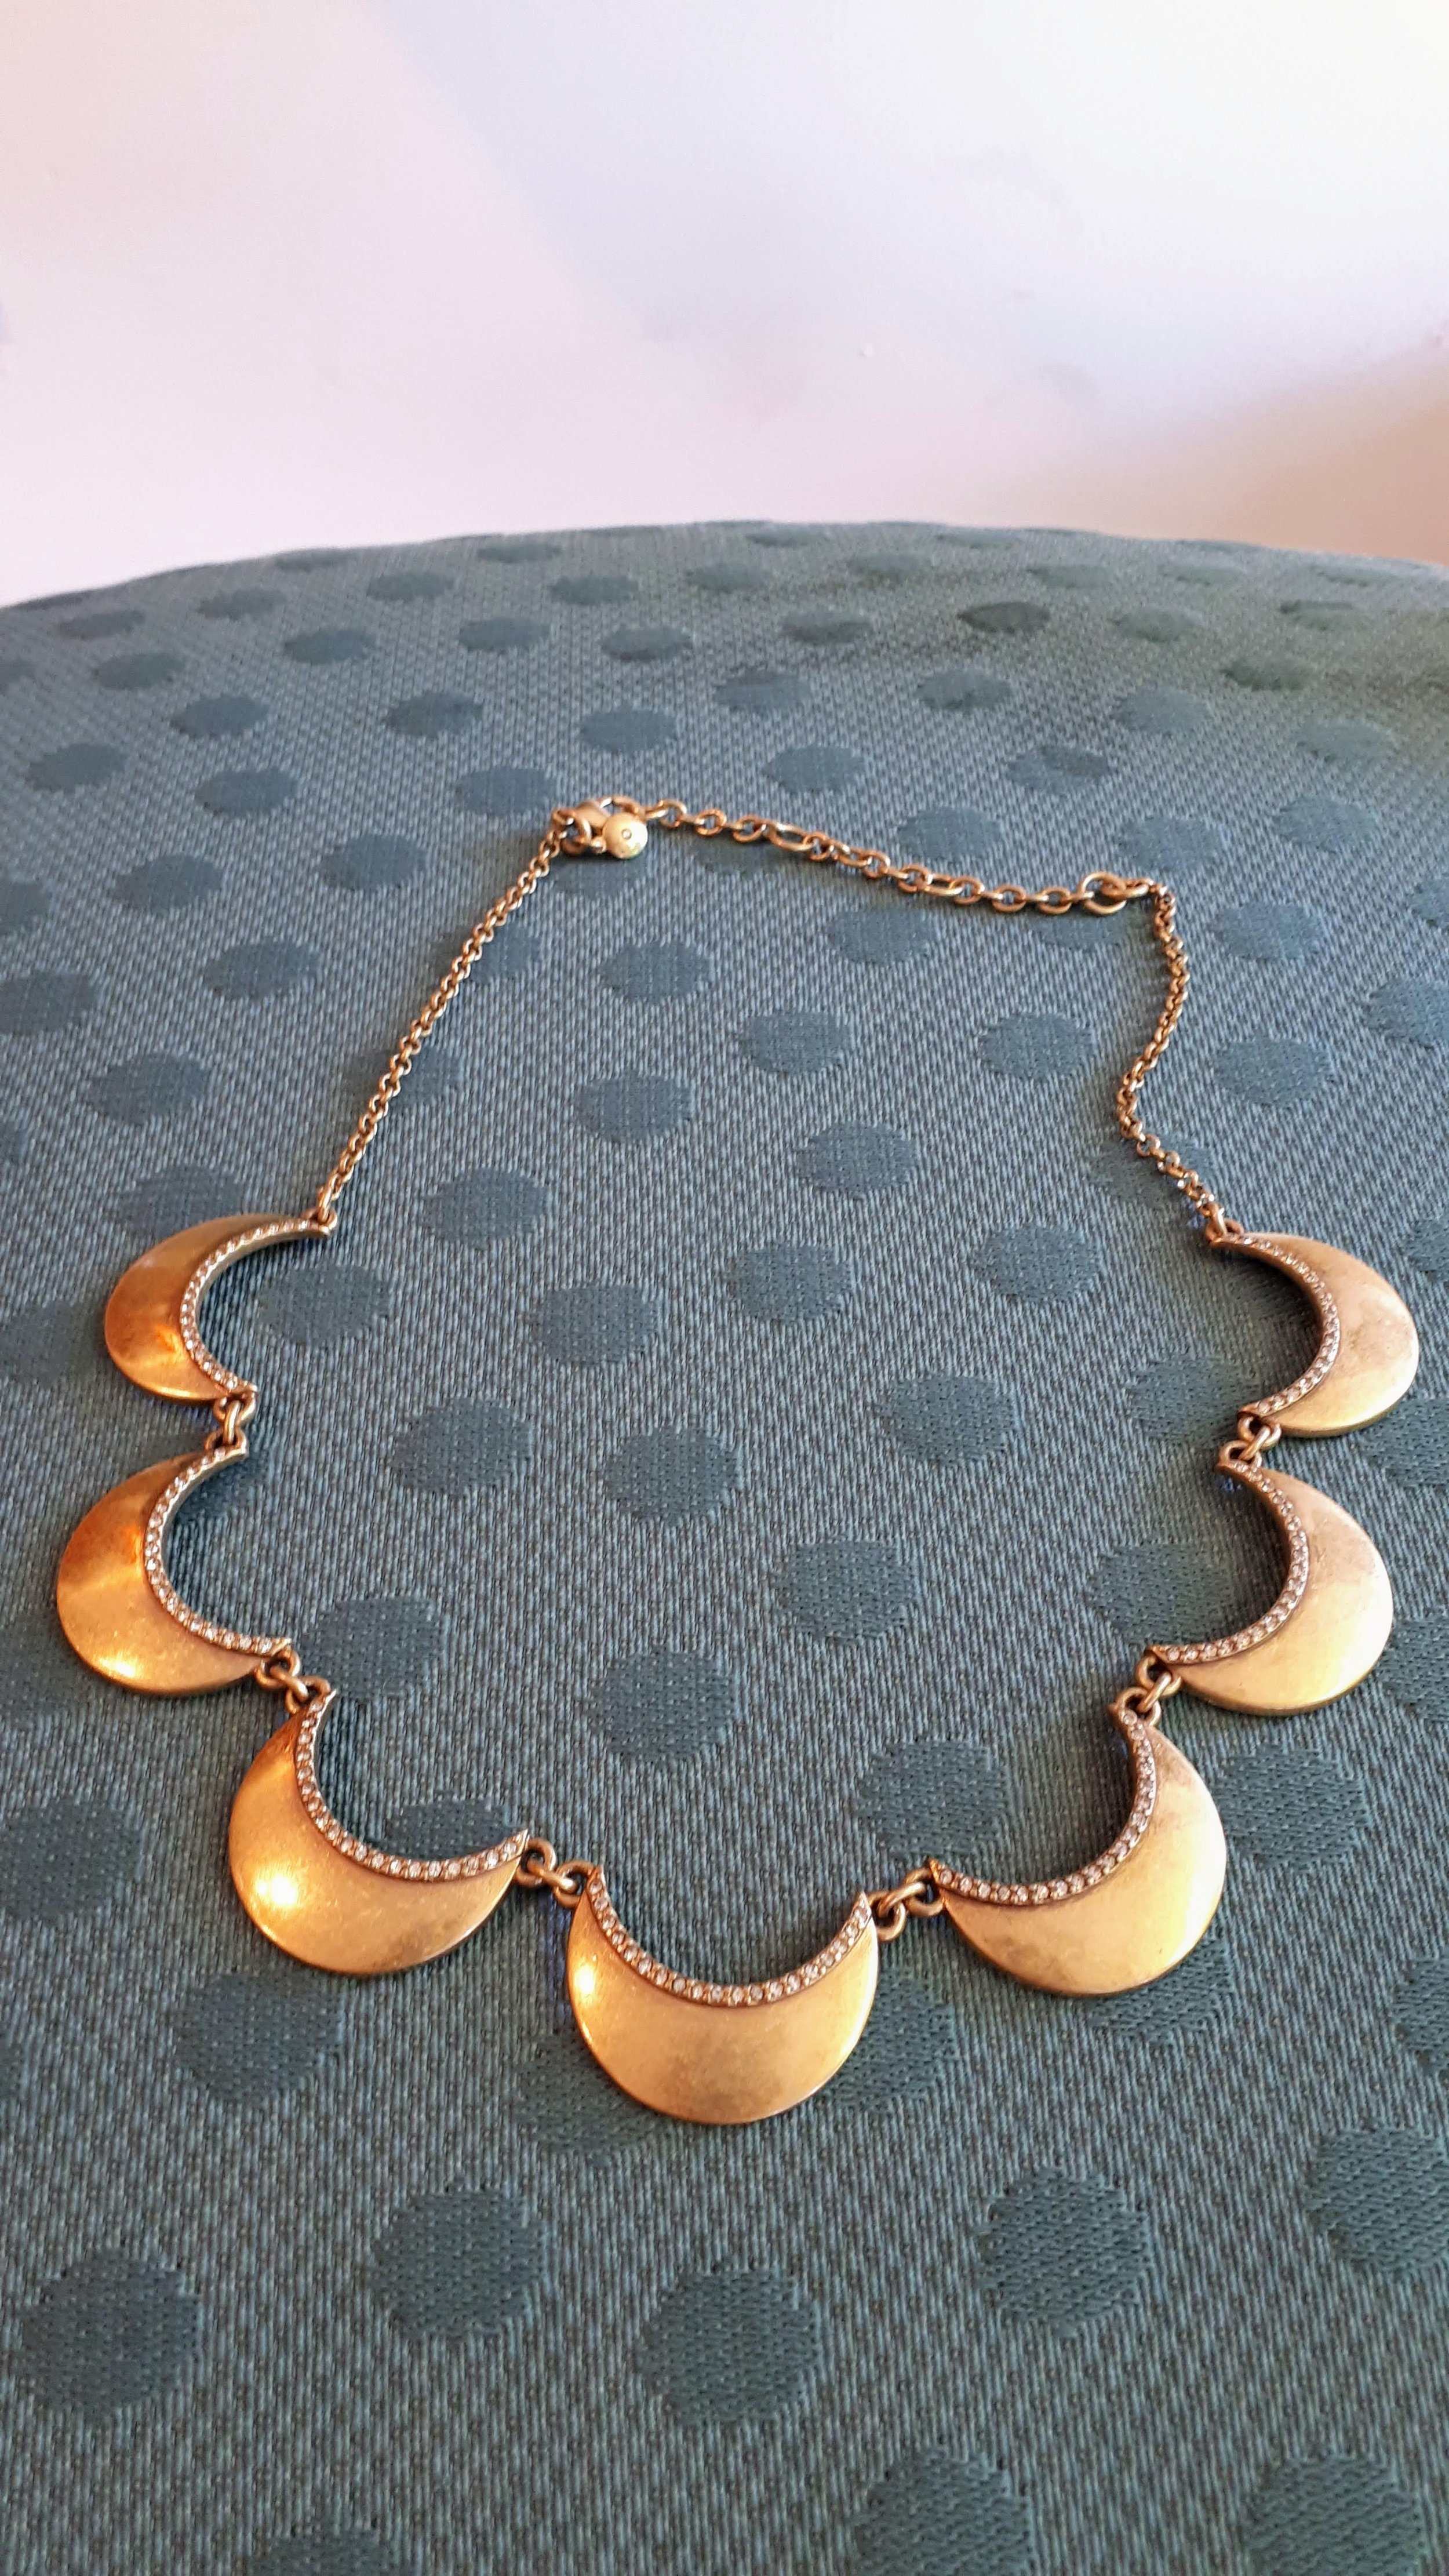 Necklace, $22